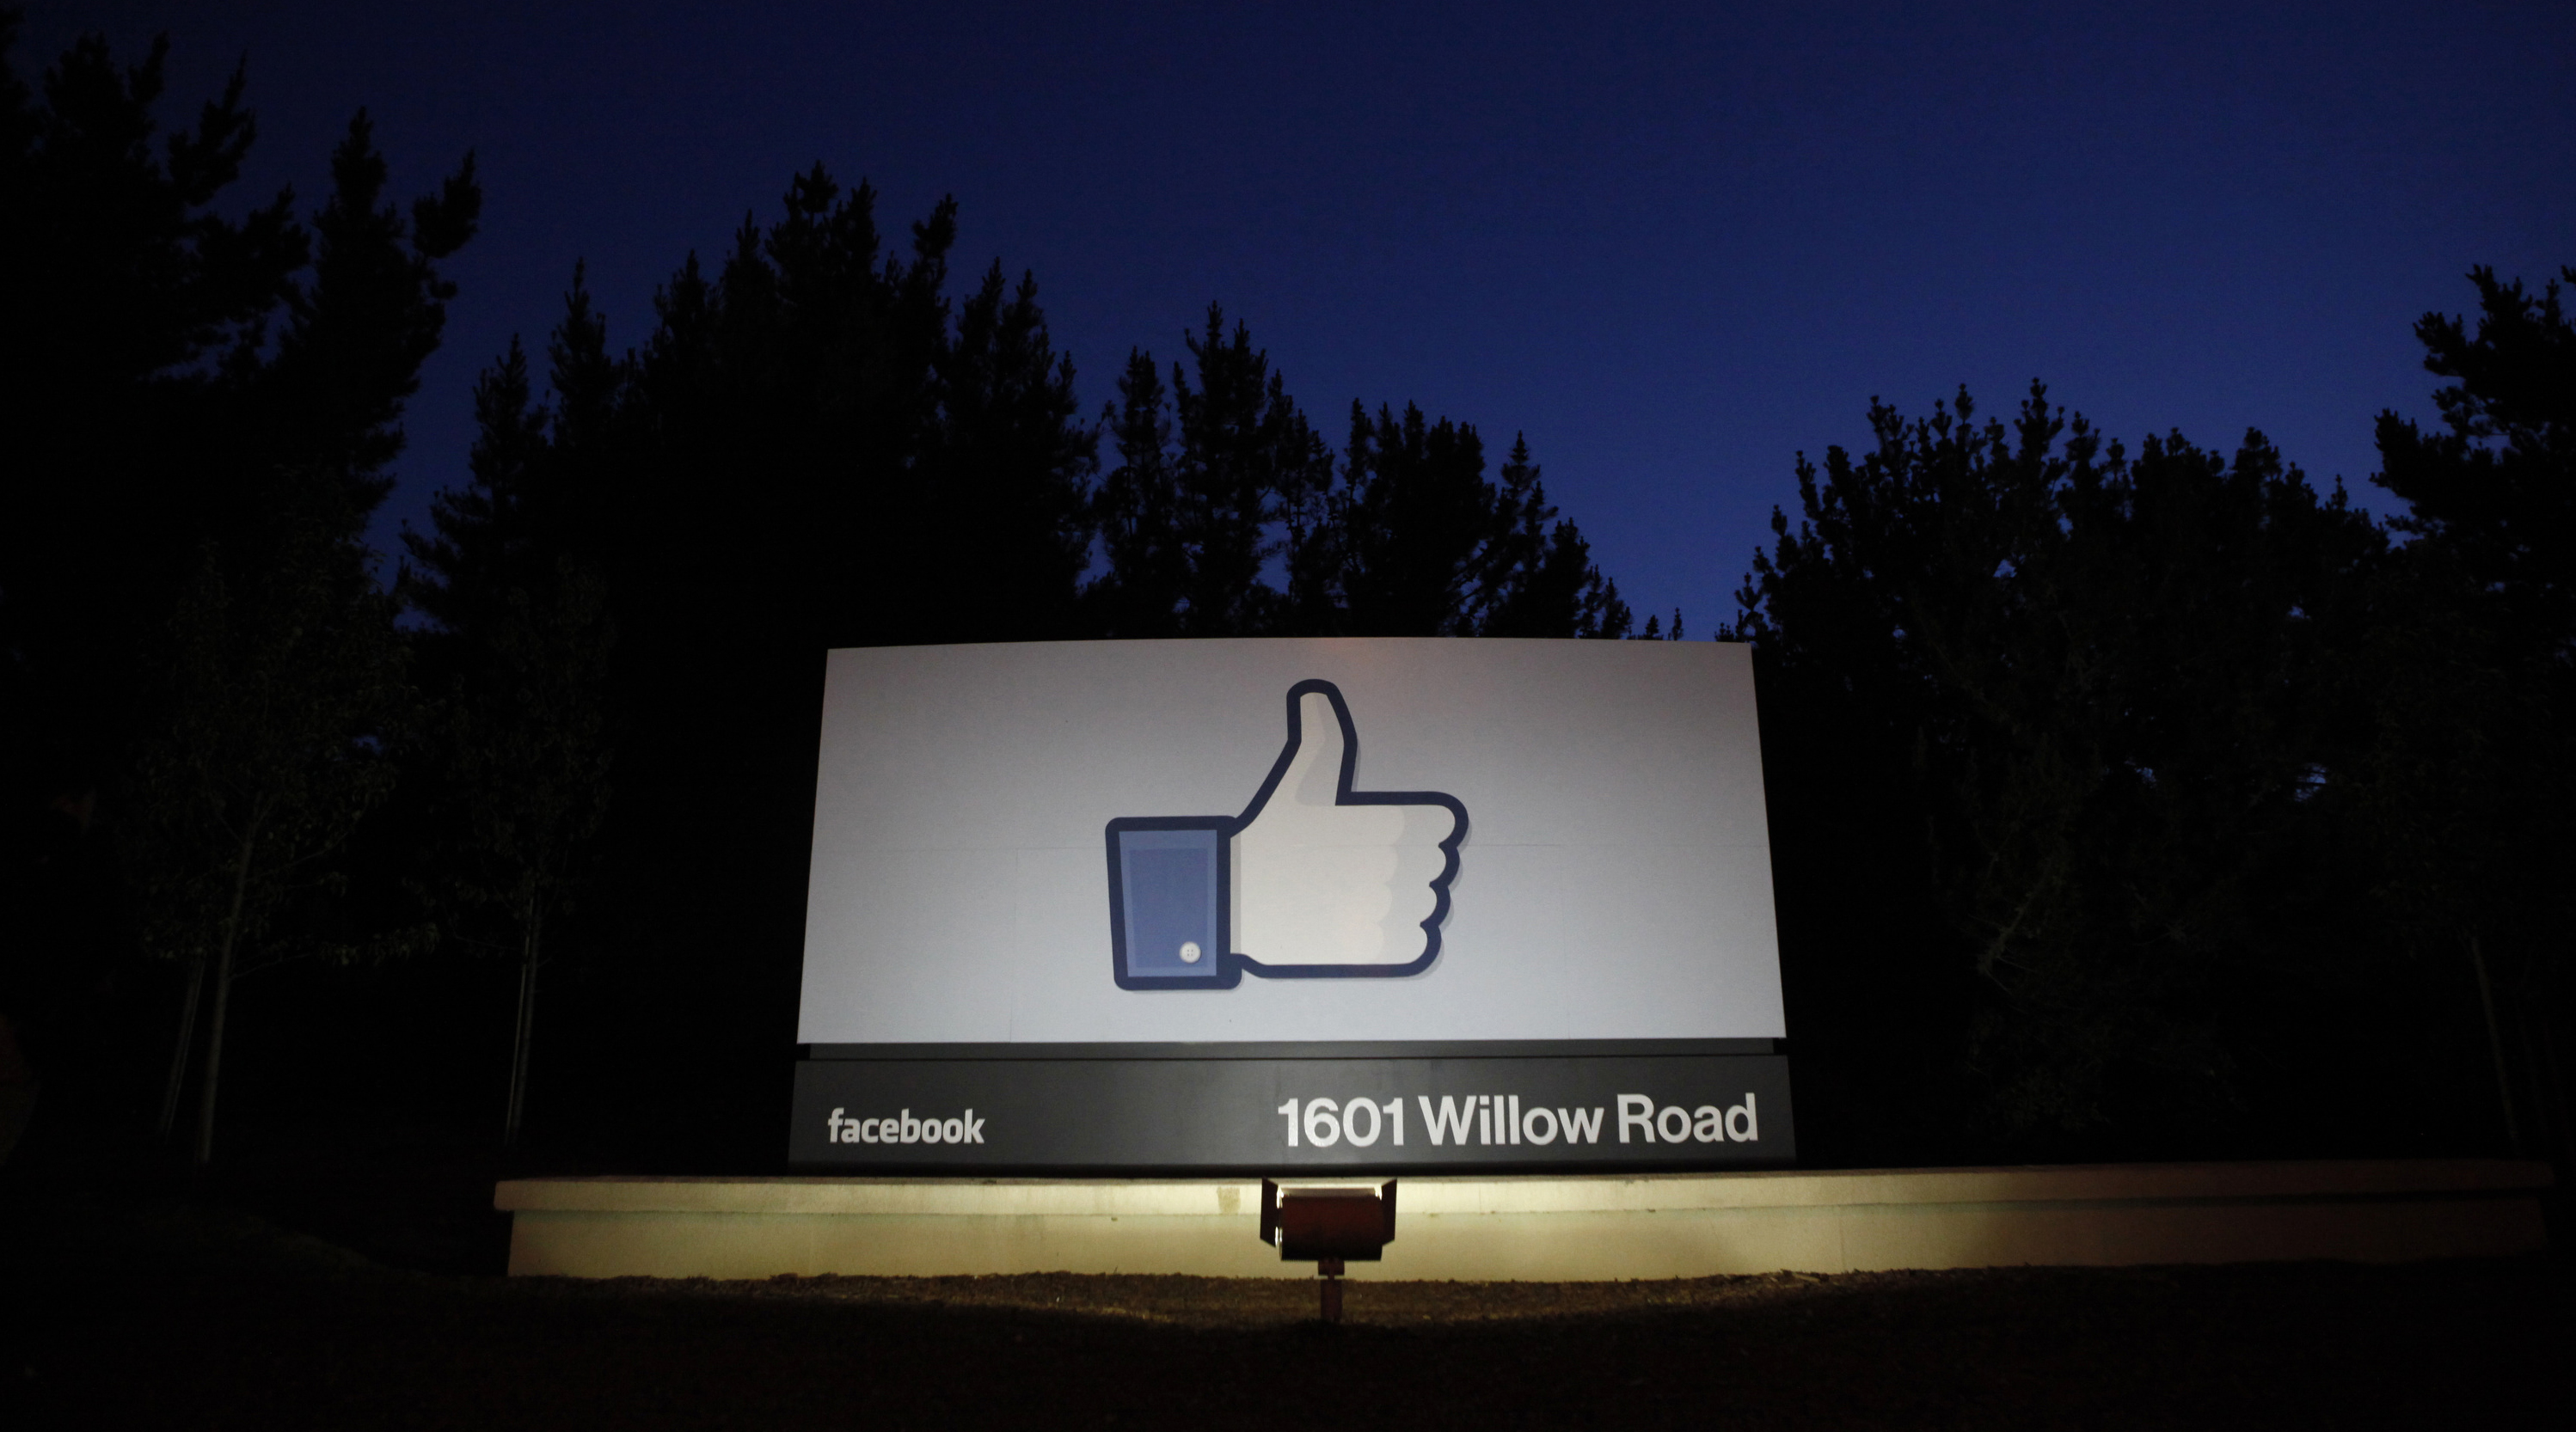 The sun rises behind the entrance sign to Facebook headquarters in Menlo Park before the company's IPO launch, May 18, 2012. Facebook Inc, will begin trading on the Nasdaq market on Friday, with it's initial public offering at $38 per share, valuing the world's largest social network at more than $100 billion.